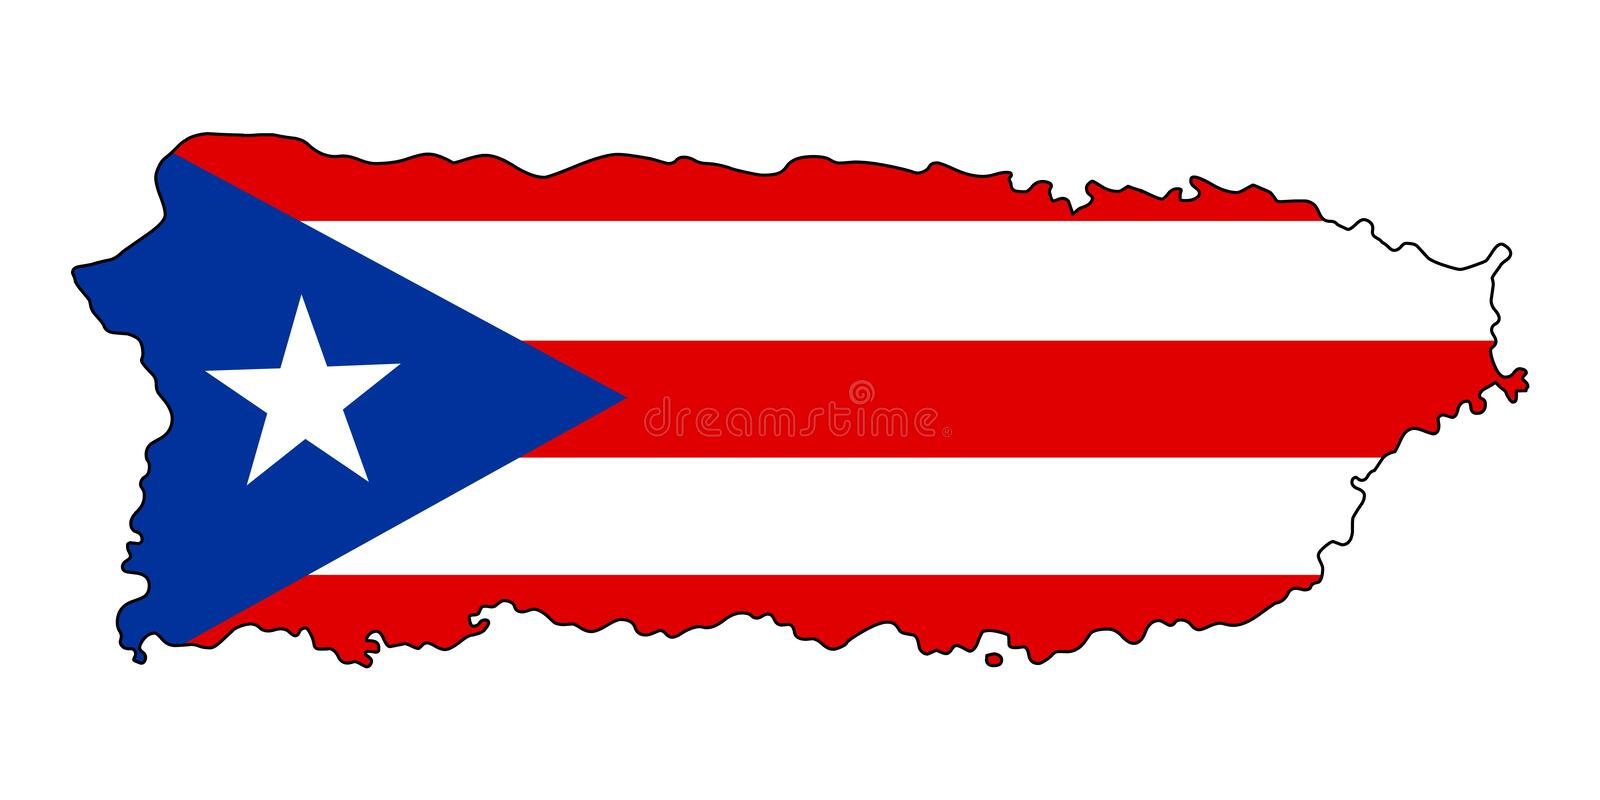 Puerto Rico .Map of Puerto Rico vector illustration stock illustration